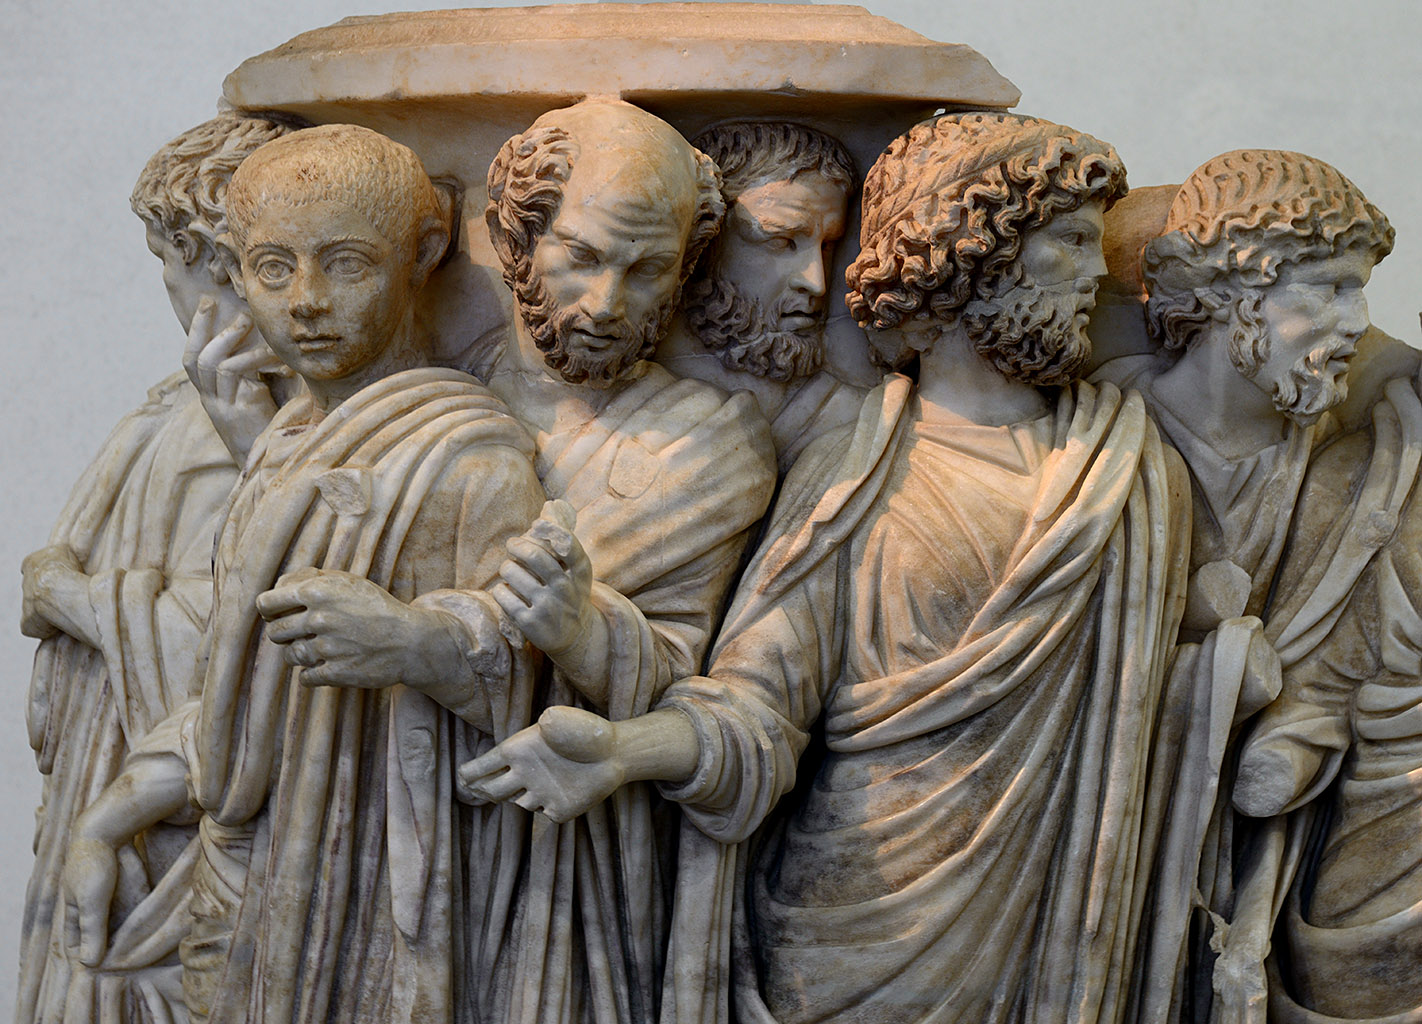 A lenos sarcophagus with processus consularis (a procession for the appointment of a Consul). Detail. Greek marble (Parian?). Rome, c. 270 CE. Inv. No. 126372. Rome, Roman National Museum, Palazzo Massimo alle Terme